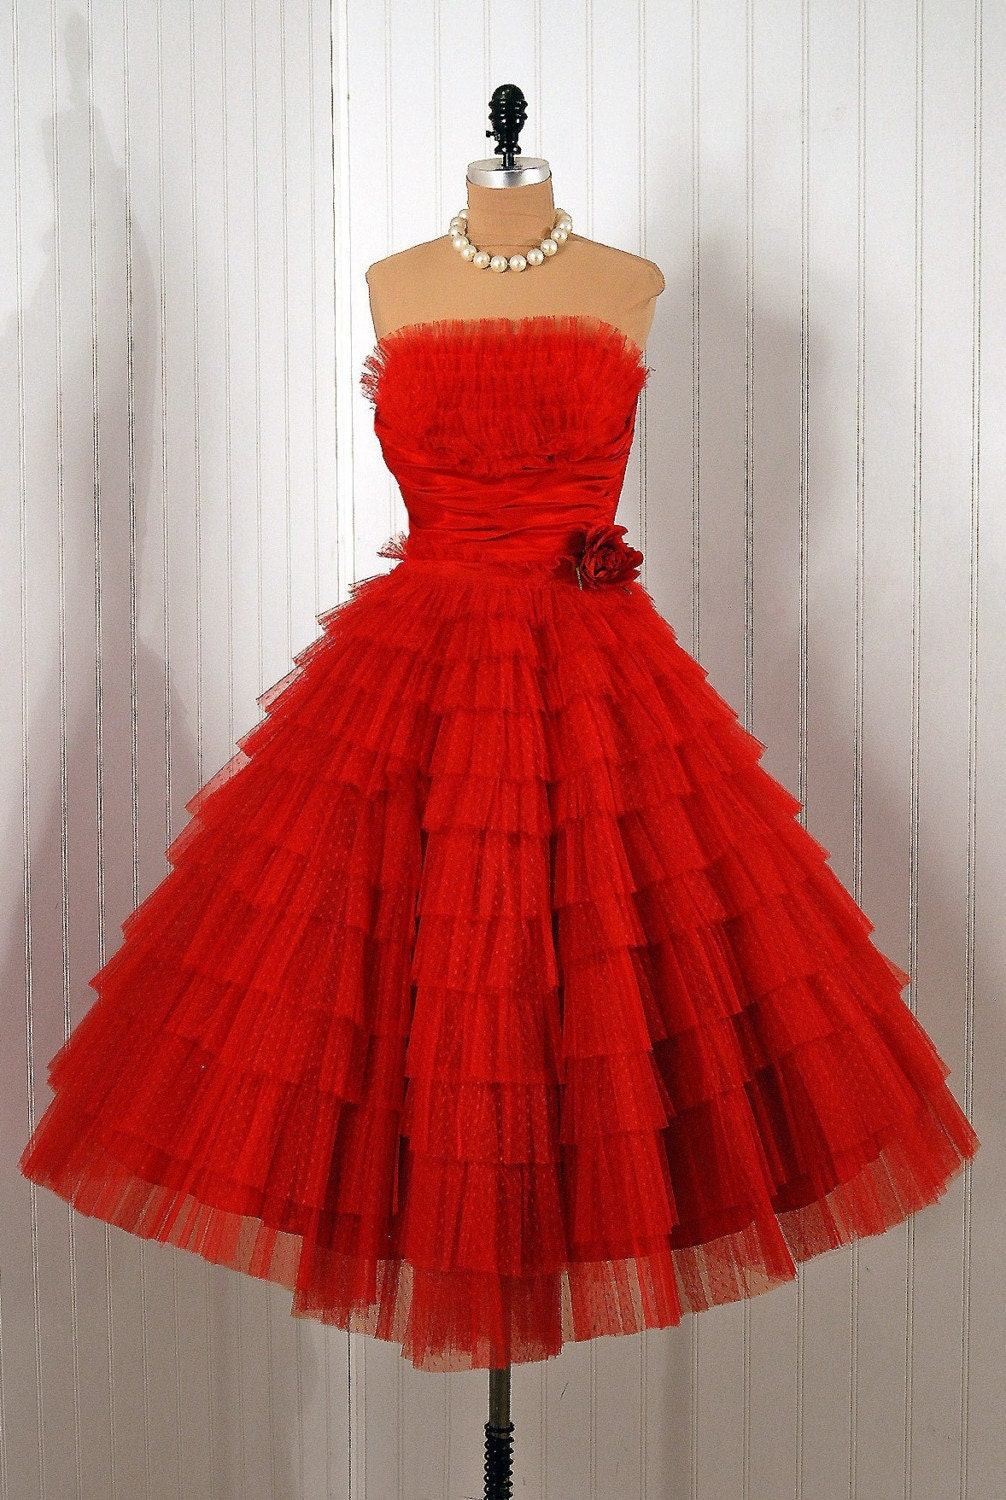 Reserved for mikaelajm 1950's Vintage Ruby-Red Strapless Shelf-Bust Tiered-Ruffle Tulle Rockabilly Party Dress